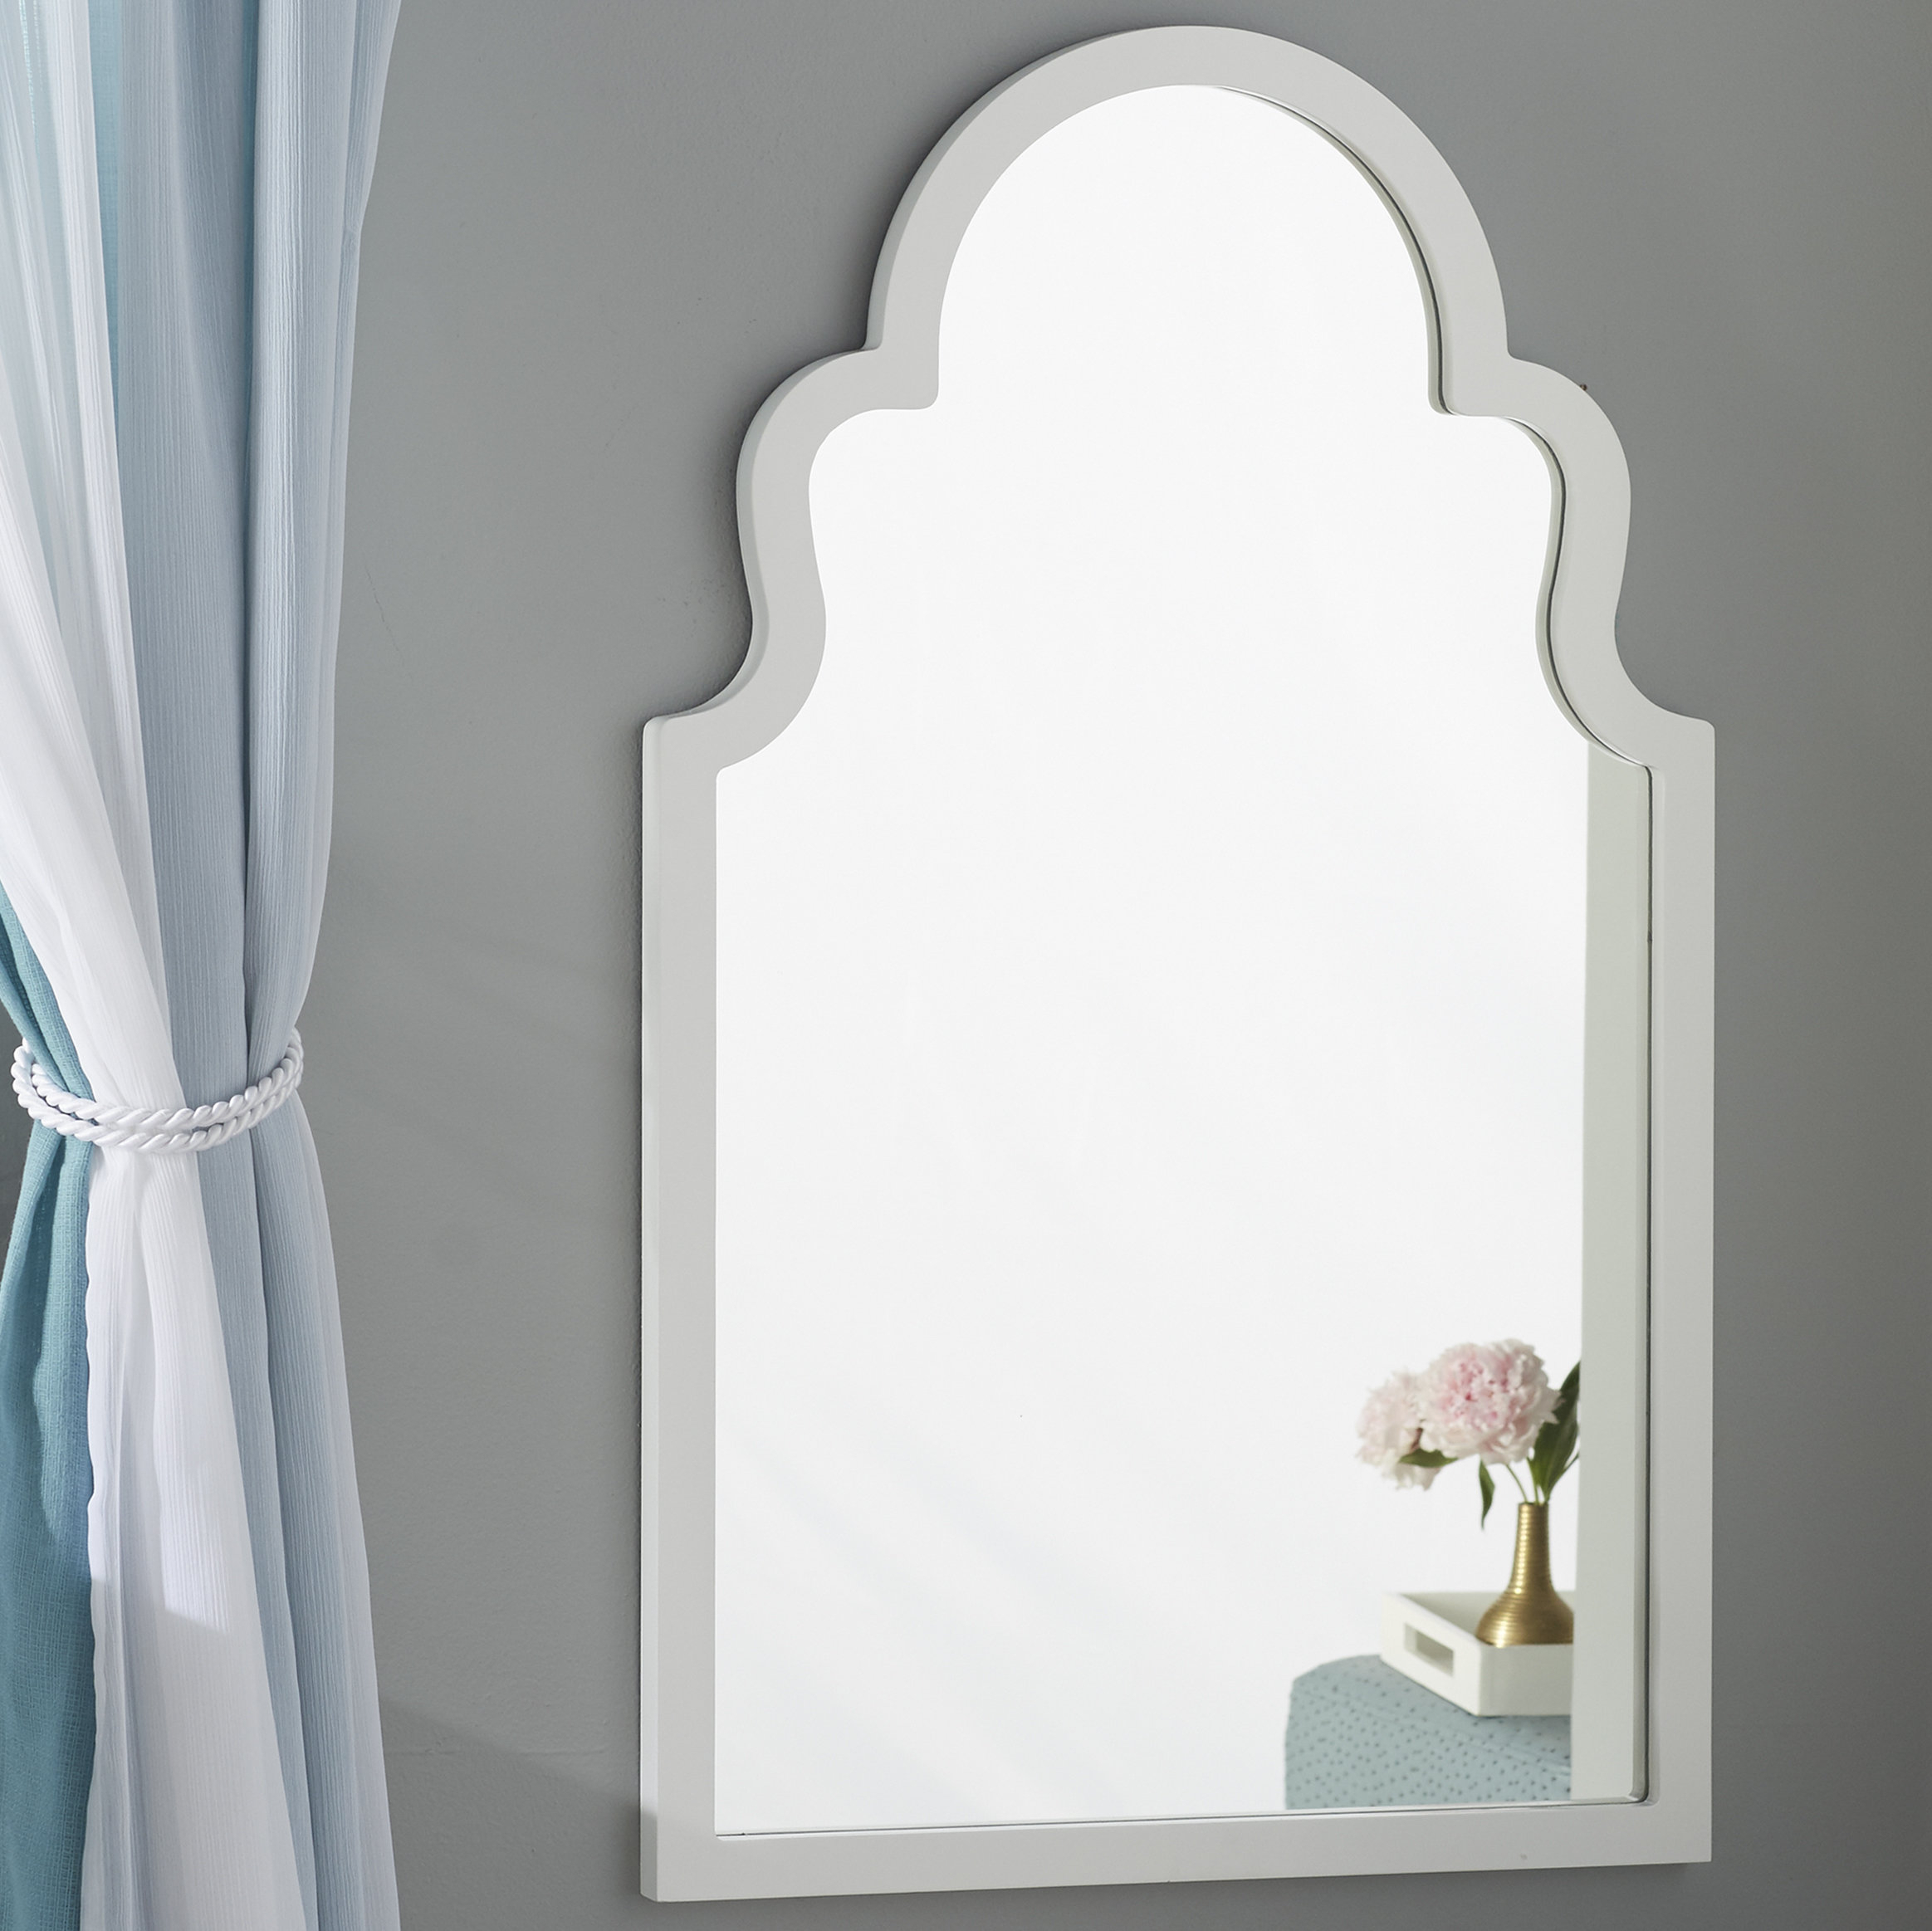 Arch Vertical Wall Mirror with regard to Arch Vertical Wall Mirrors (Image 10 of 30)